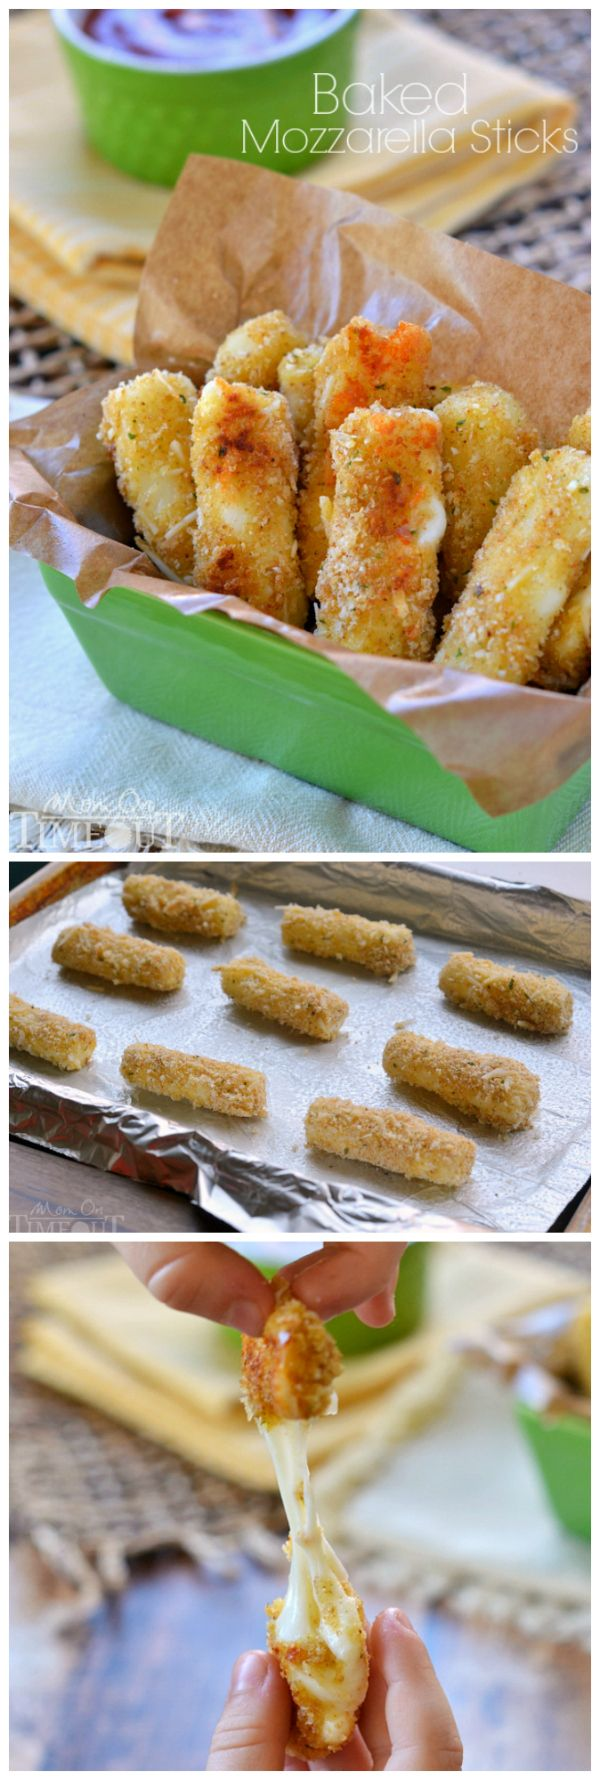 These Freezer-Friendly Baked Mozzarella Sticks are perfect for after-school snacks, late night munchies, and game day! | MomOnTimeout.com | #appetizer #cheese #recipe  Amazing recipe, really easy and really tasty!